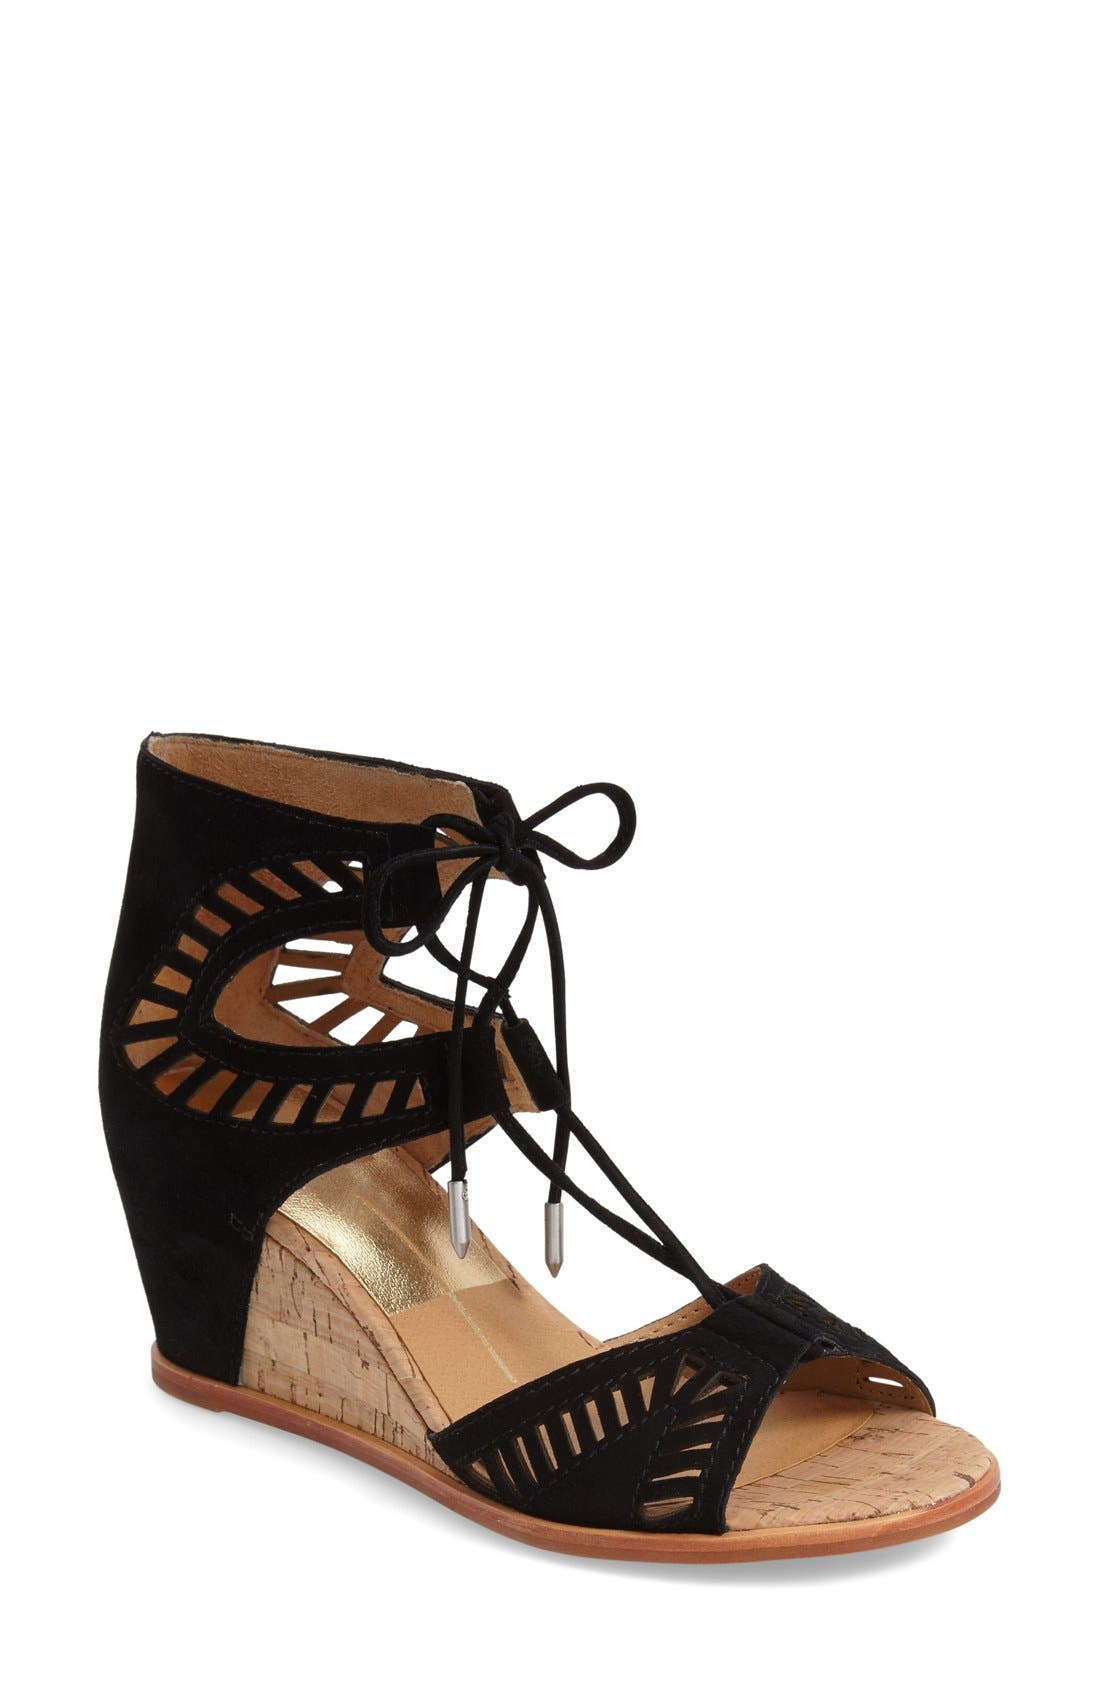 DOLCE VITA, 'Linsey' Lace-Up Wedge Sandal, Main thumbnail 1, color, 001